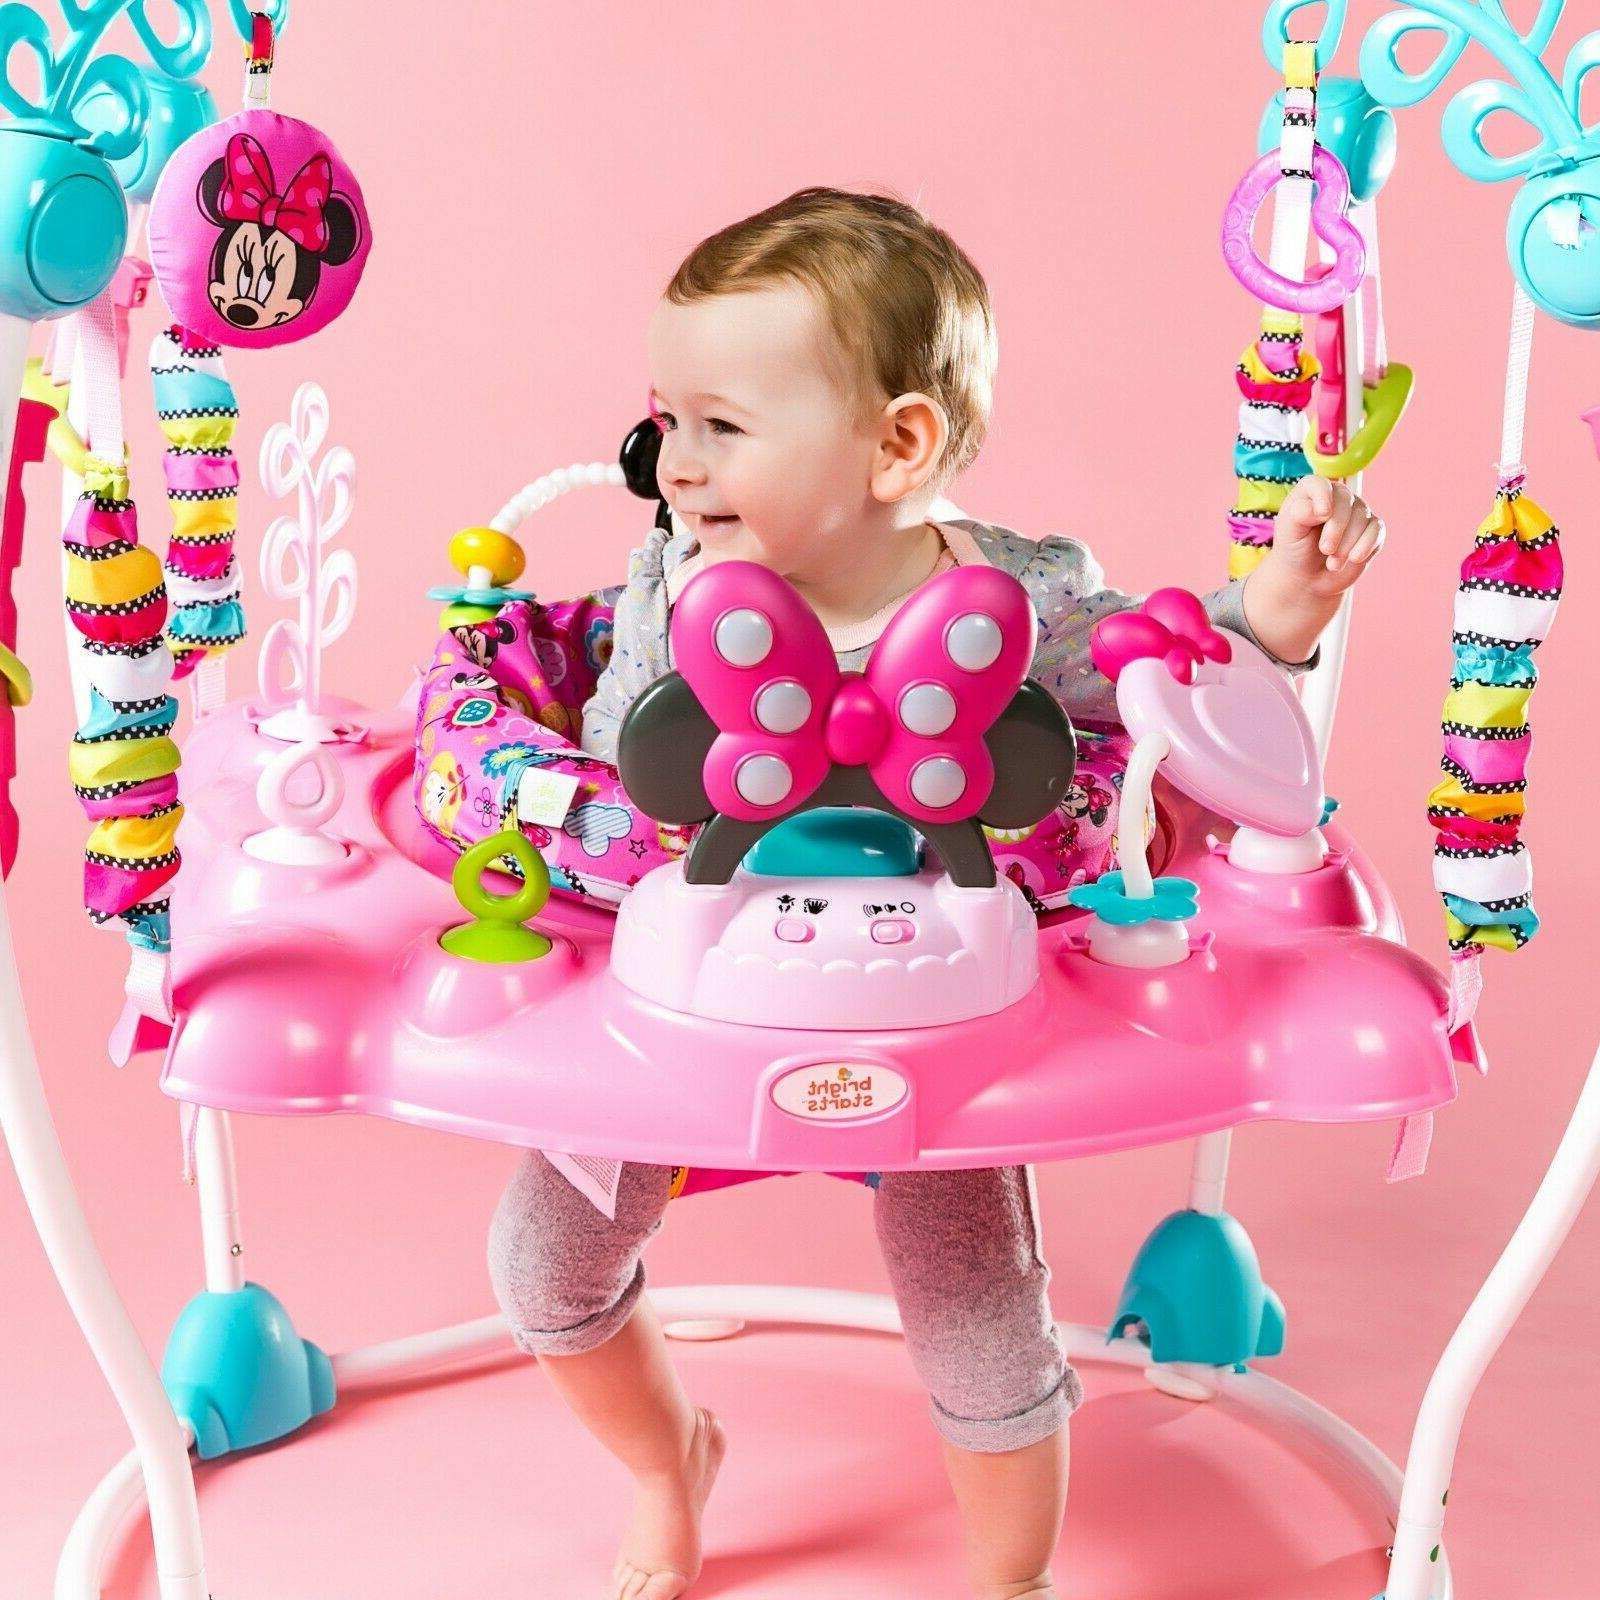 Baby Infant Bouncer Seat Toy Sounds Gift